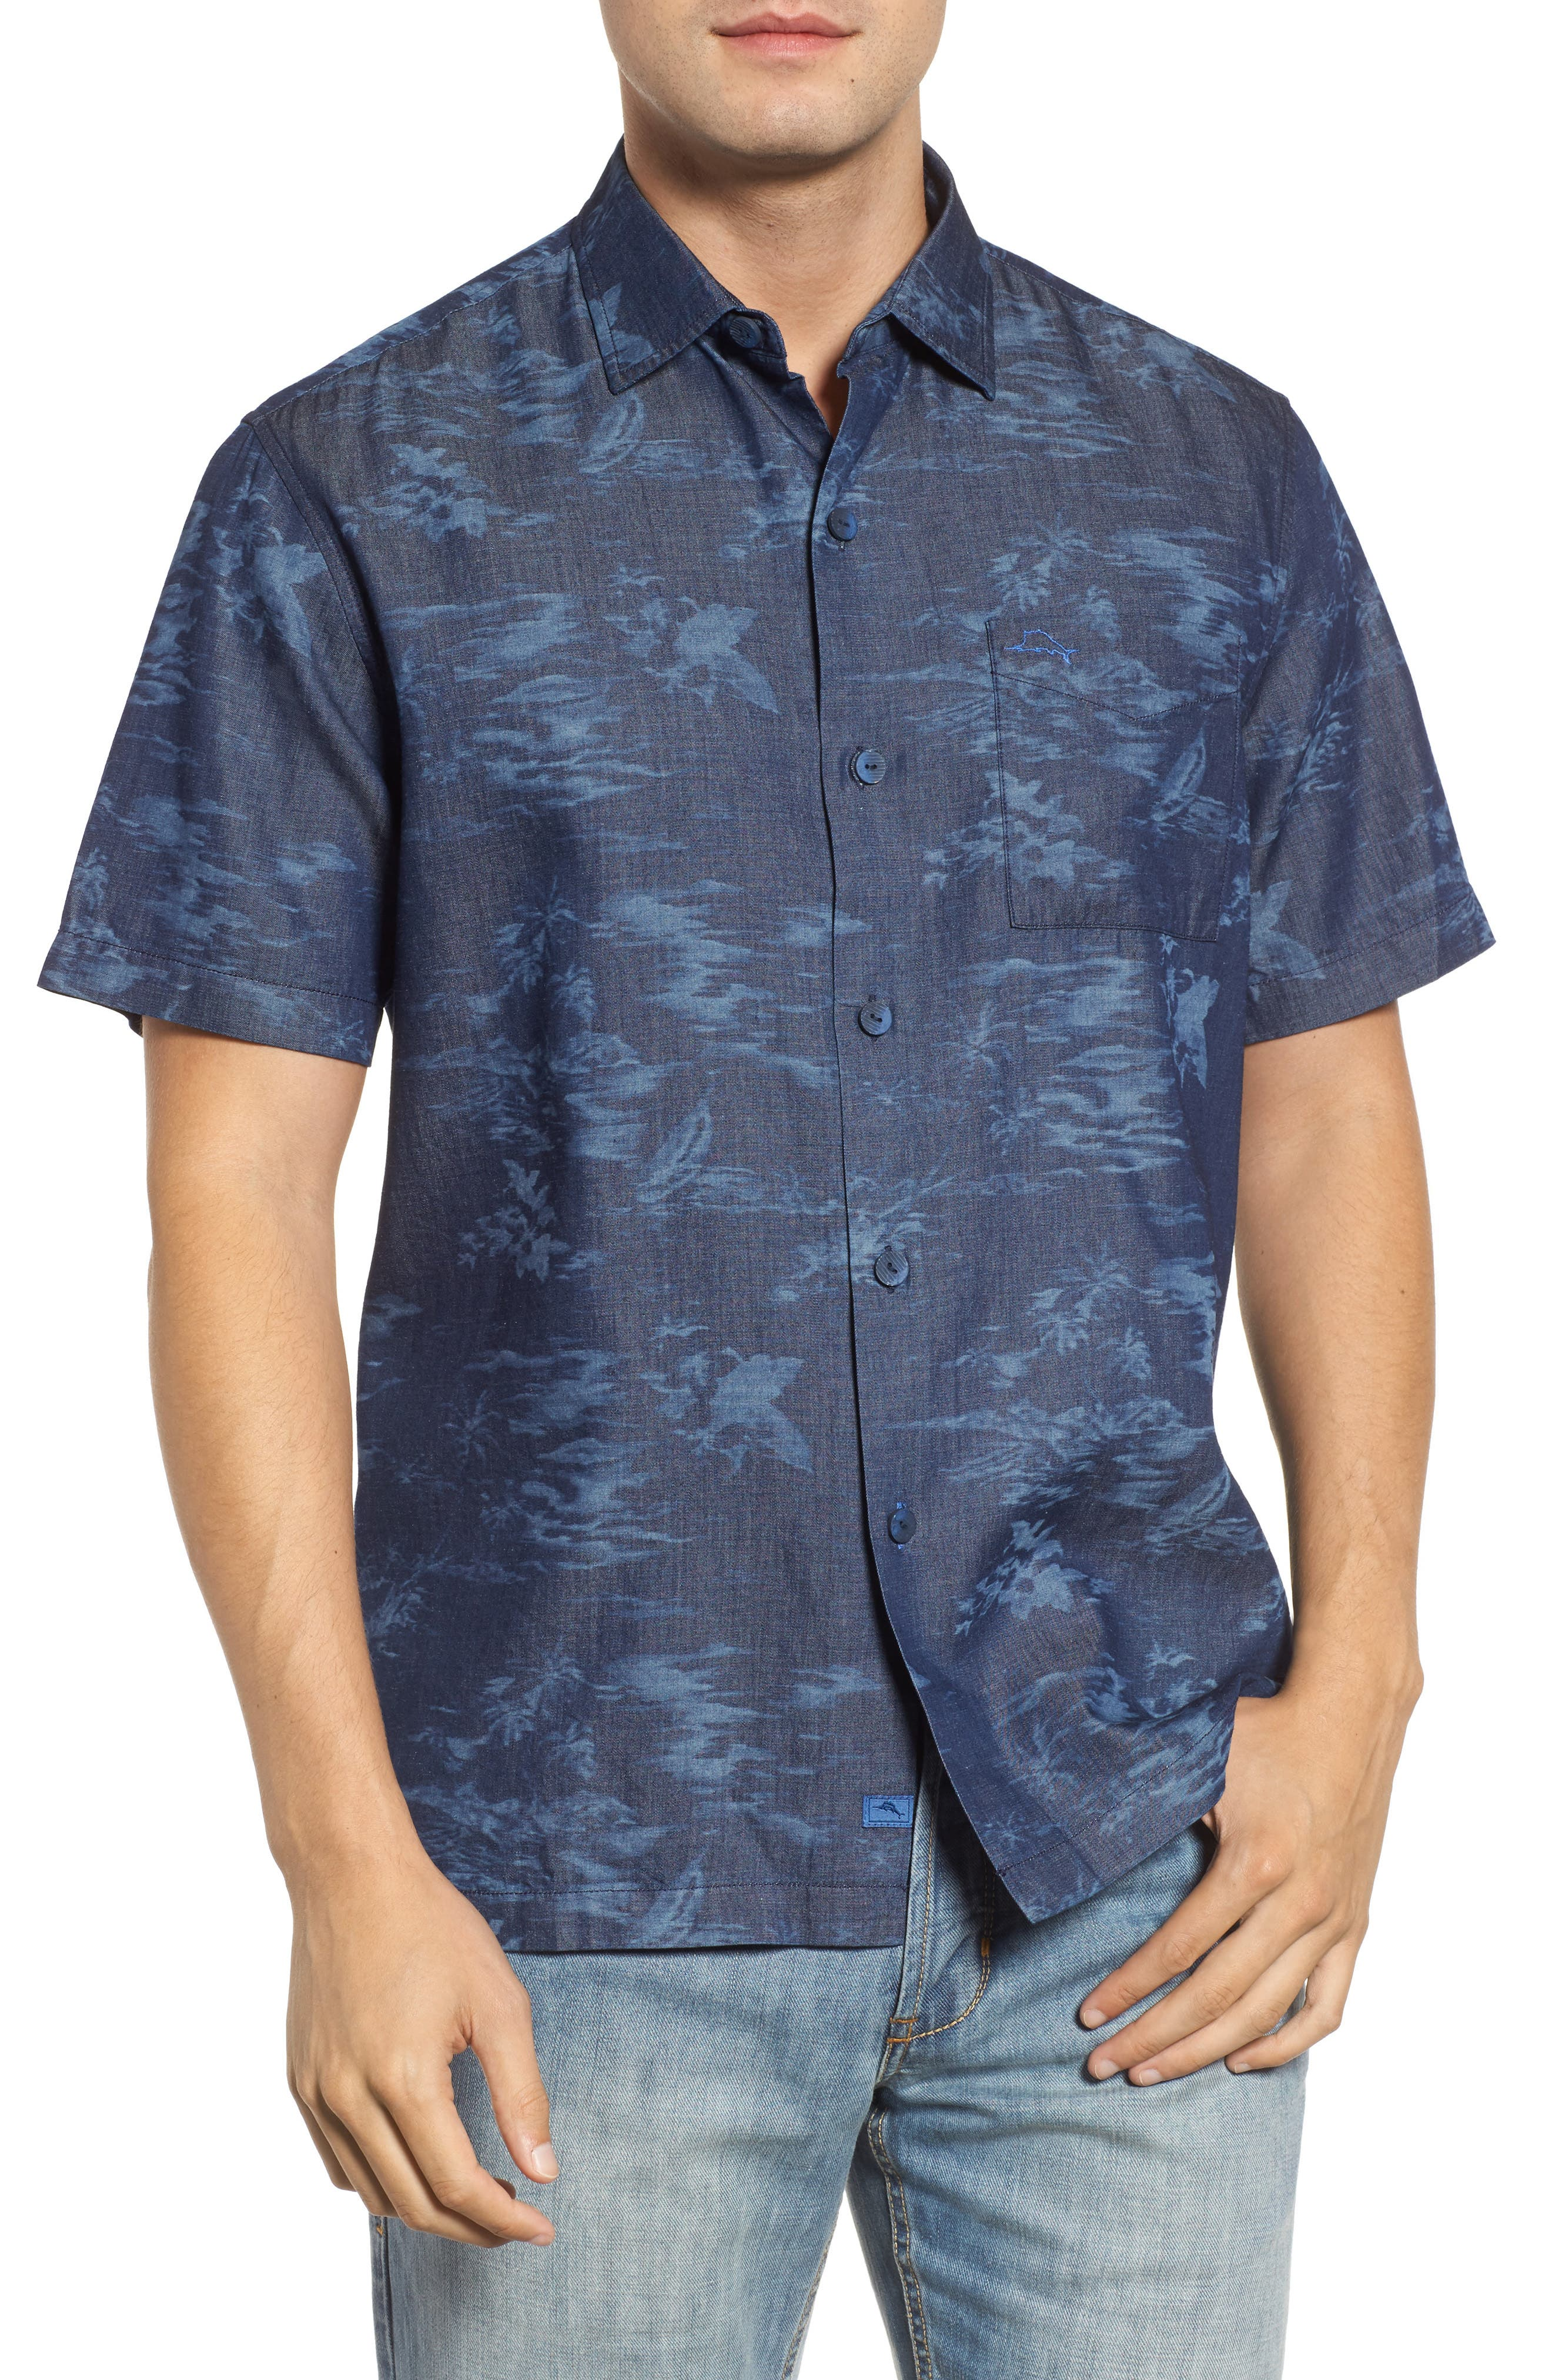 Alternate Image 1 Selected - Tommy Bahama South Beach Scenic Sport Shirt